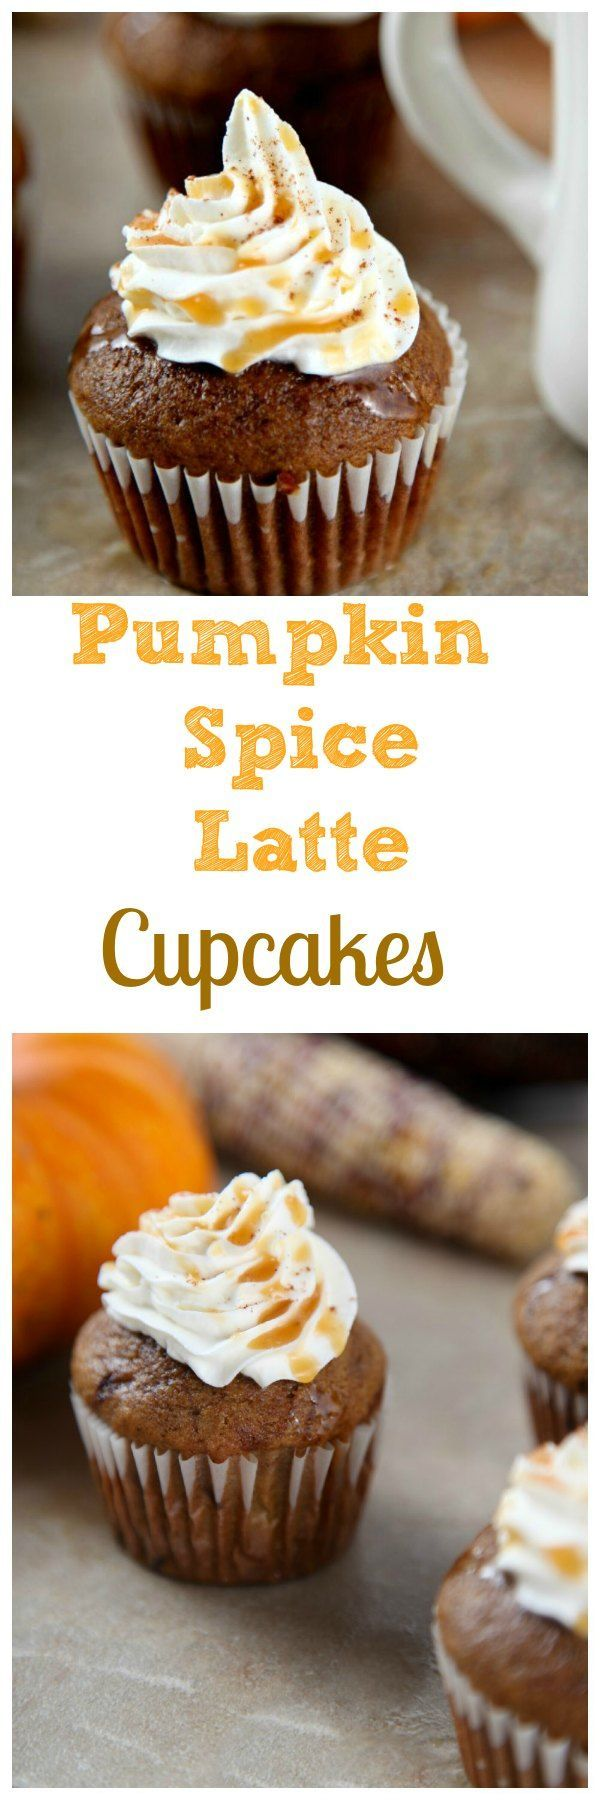 about Spice Cupcakes on Pinterest | Pumpkin Spice Cupcakes, Cupcake ...